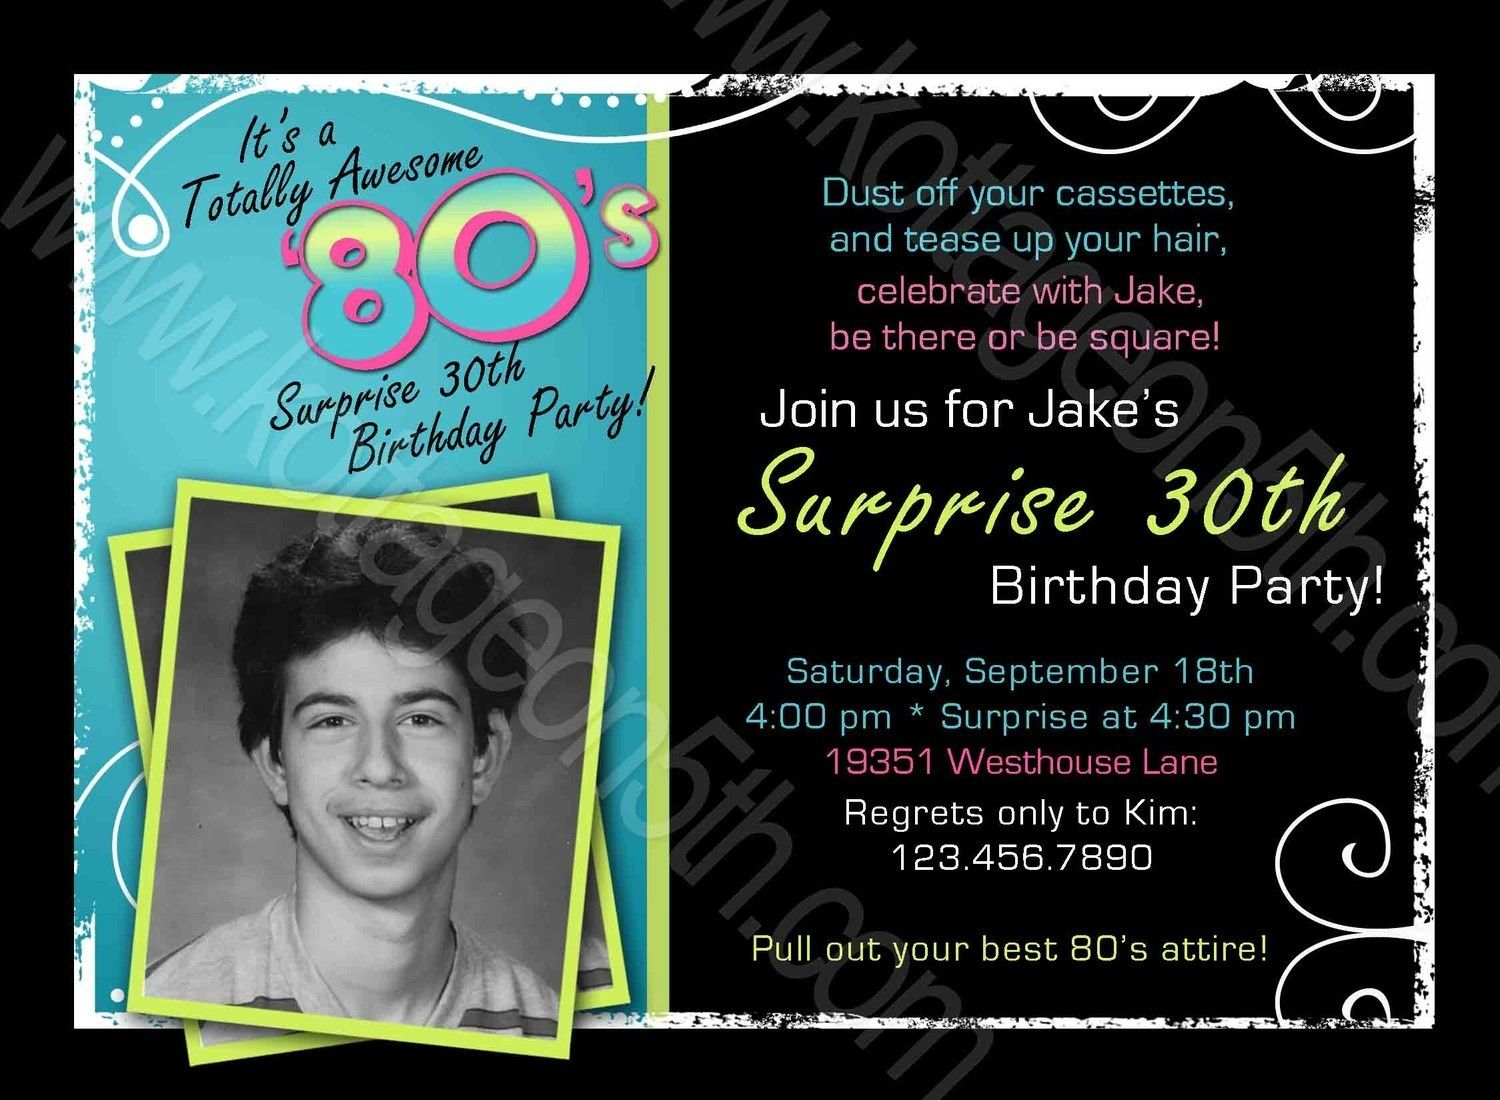 Totally Awesome 80s Adult Mens or Womens Birthday Party – Surprise 30th Birthday Invitations for Men